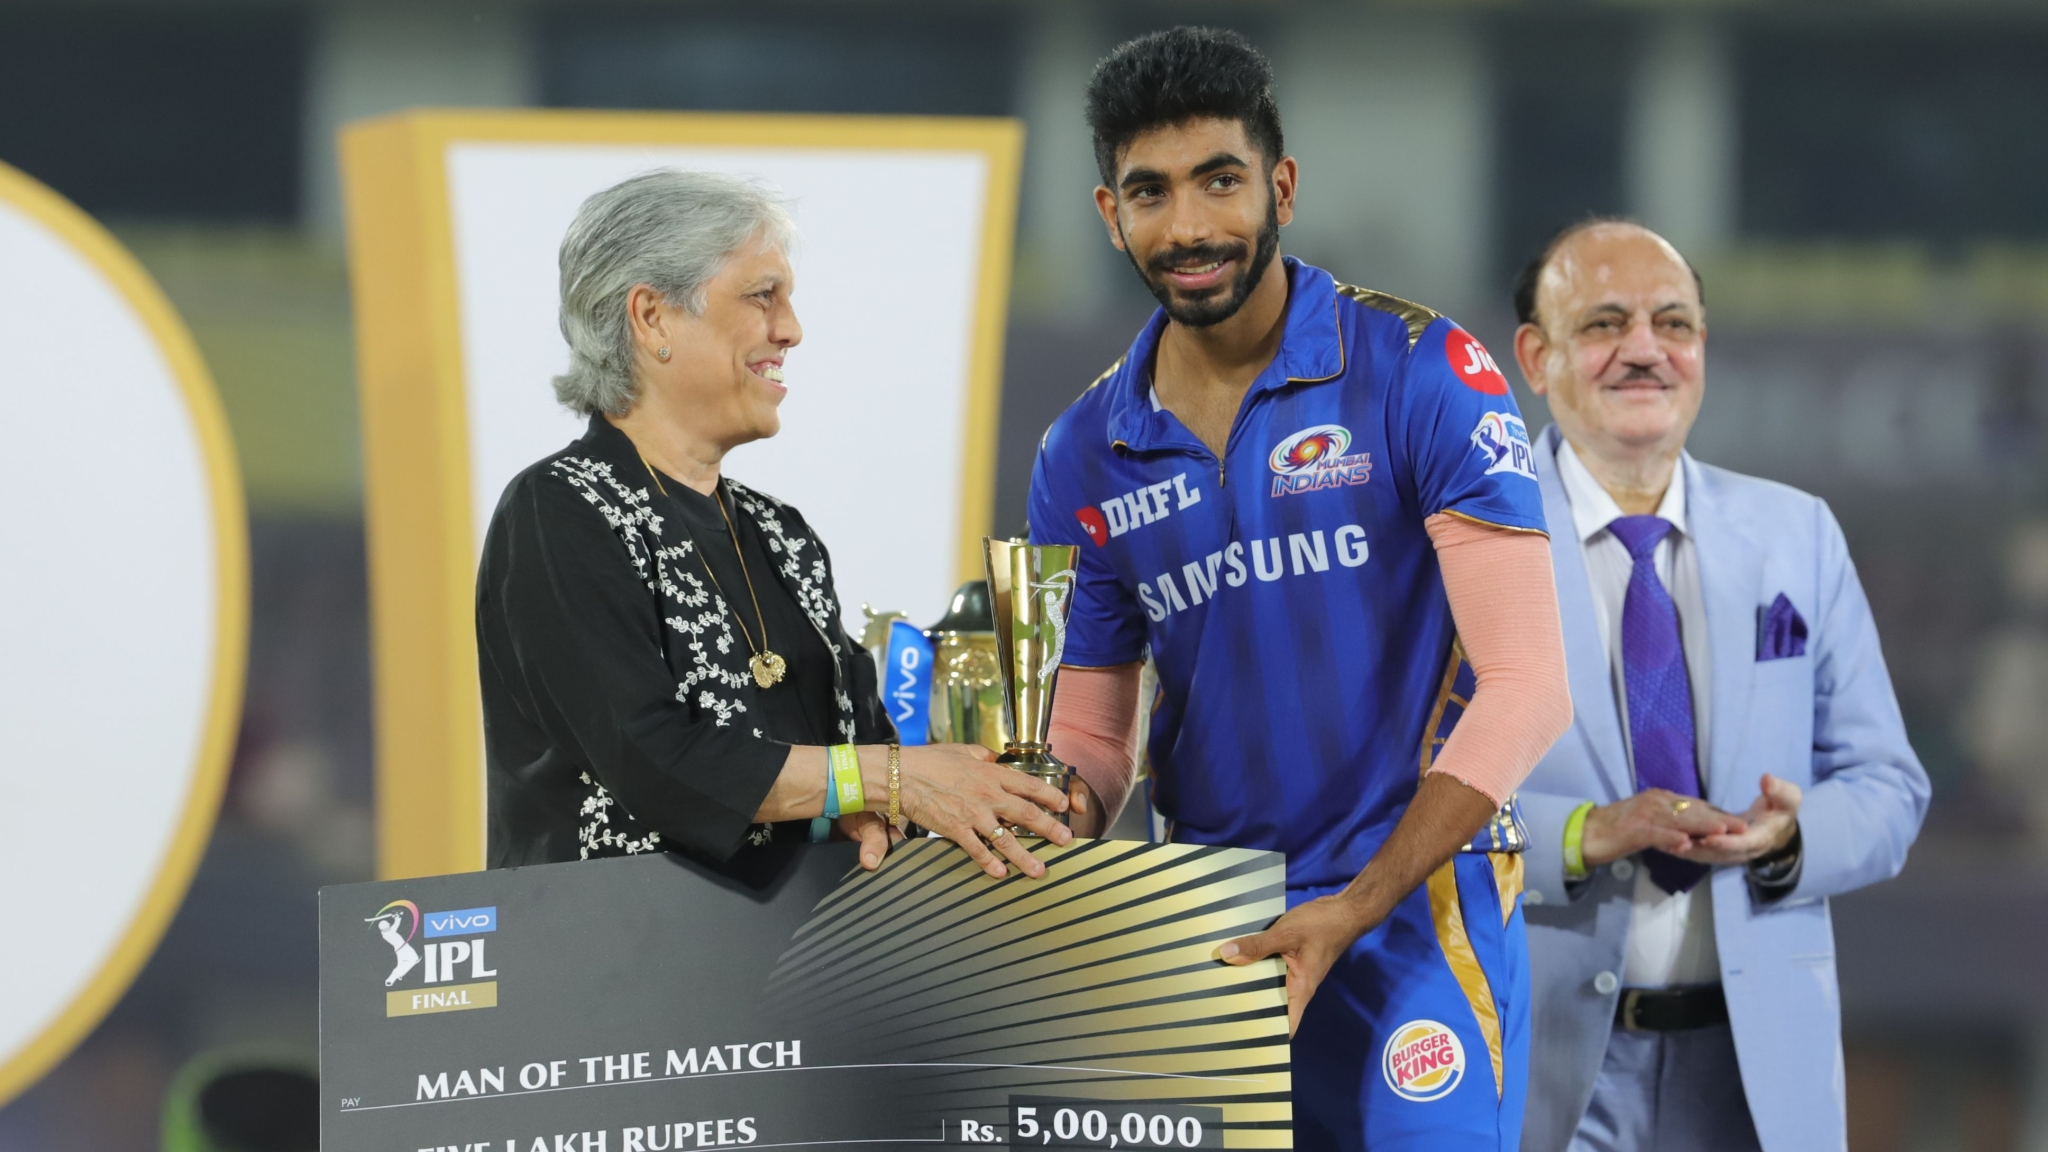 Full List of Awards Handed Out After IPL 2019 Final